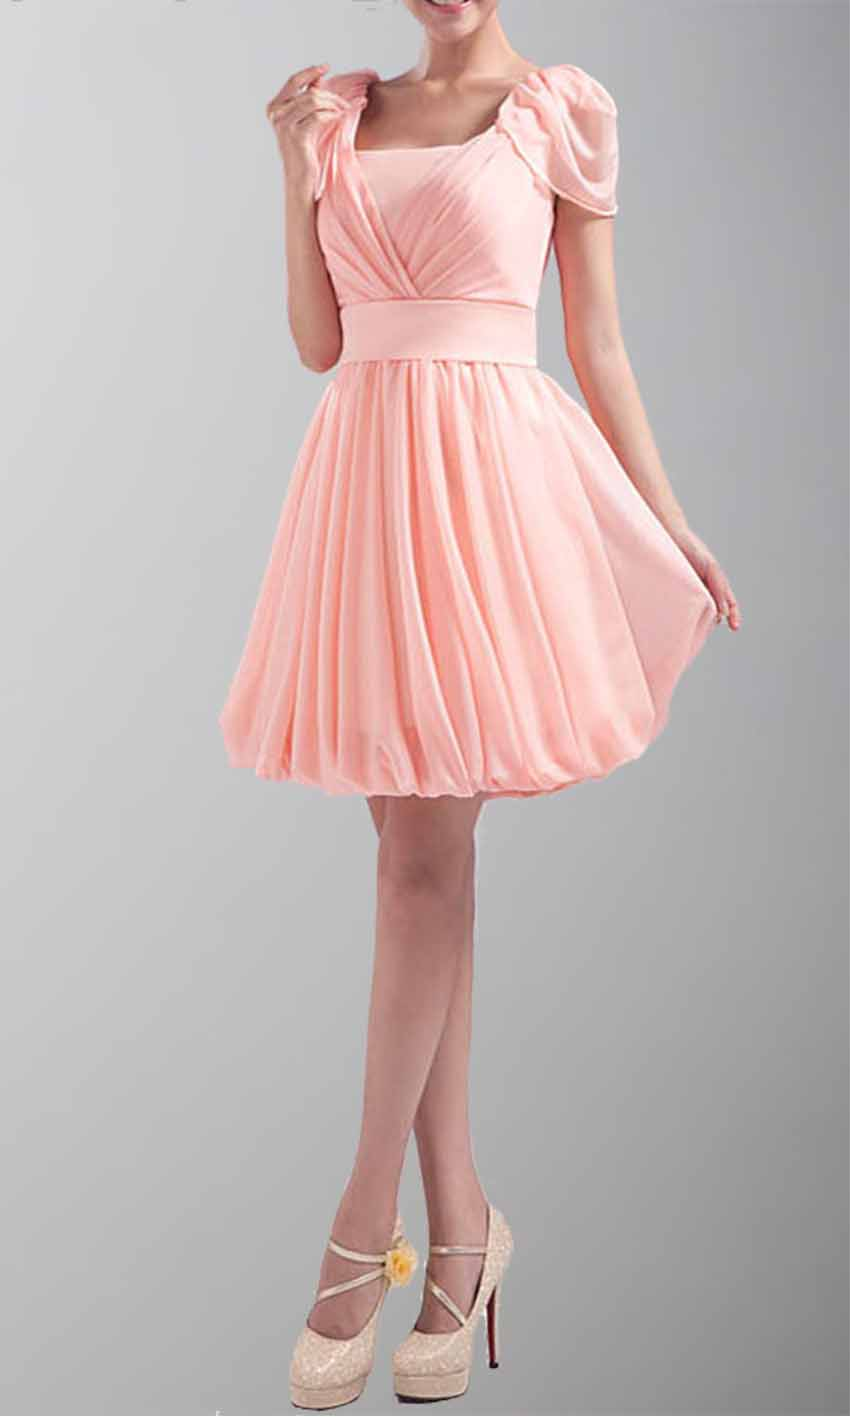 Scoop Neck Cap Sleeves Pink Chiffon Prom Dress KSP039 [KSP039] - £79.00 : Cheap Prom Dresses Uk, Bridesmaid Dresses, 2014 Prom & Evening Dresses, Look for cheap elegant prom dresses 2014, cocktail gowns, or dresses for special occasions? kissprom.co.uk offers various bridesmaid dresses, evening dress, free shipping to UK etc.